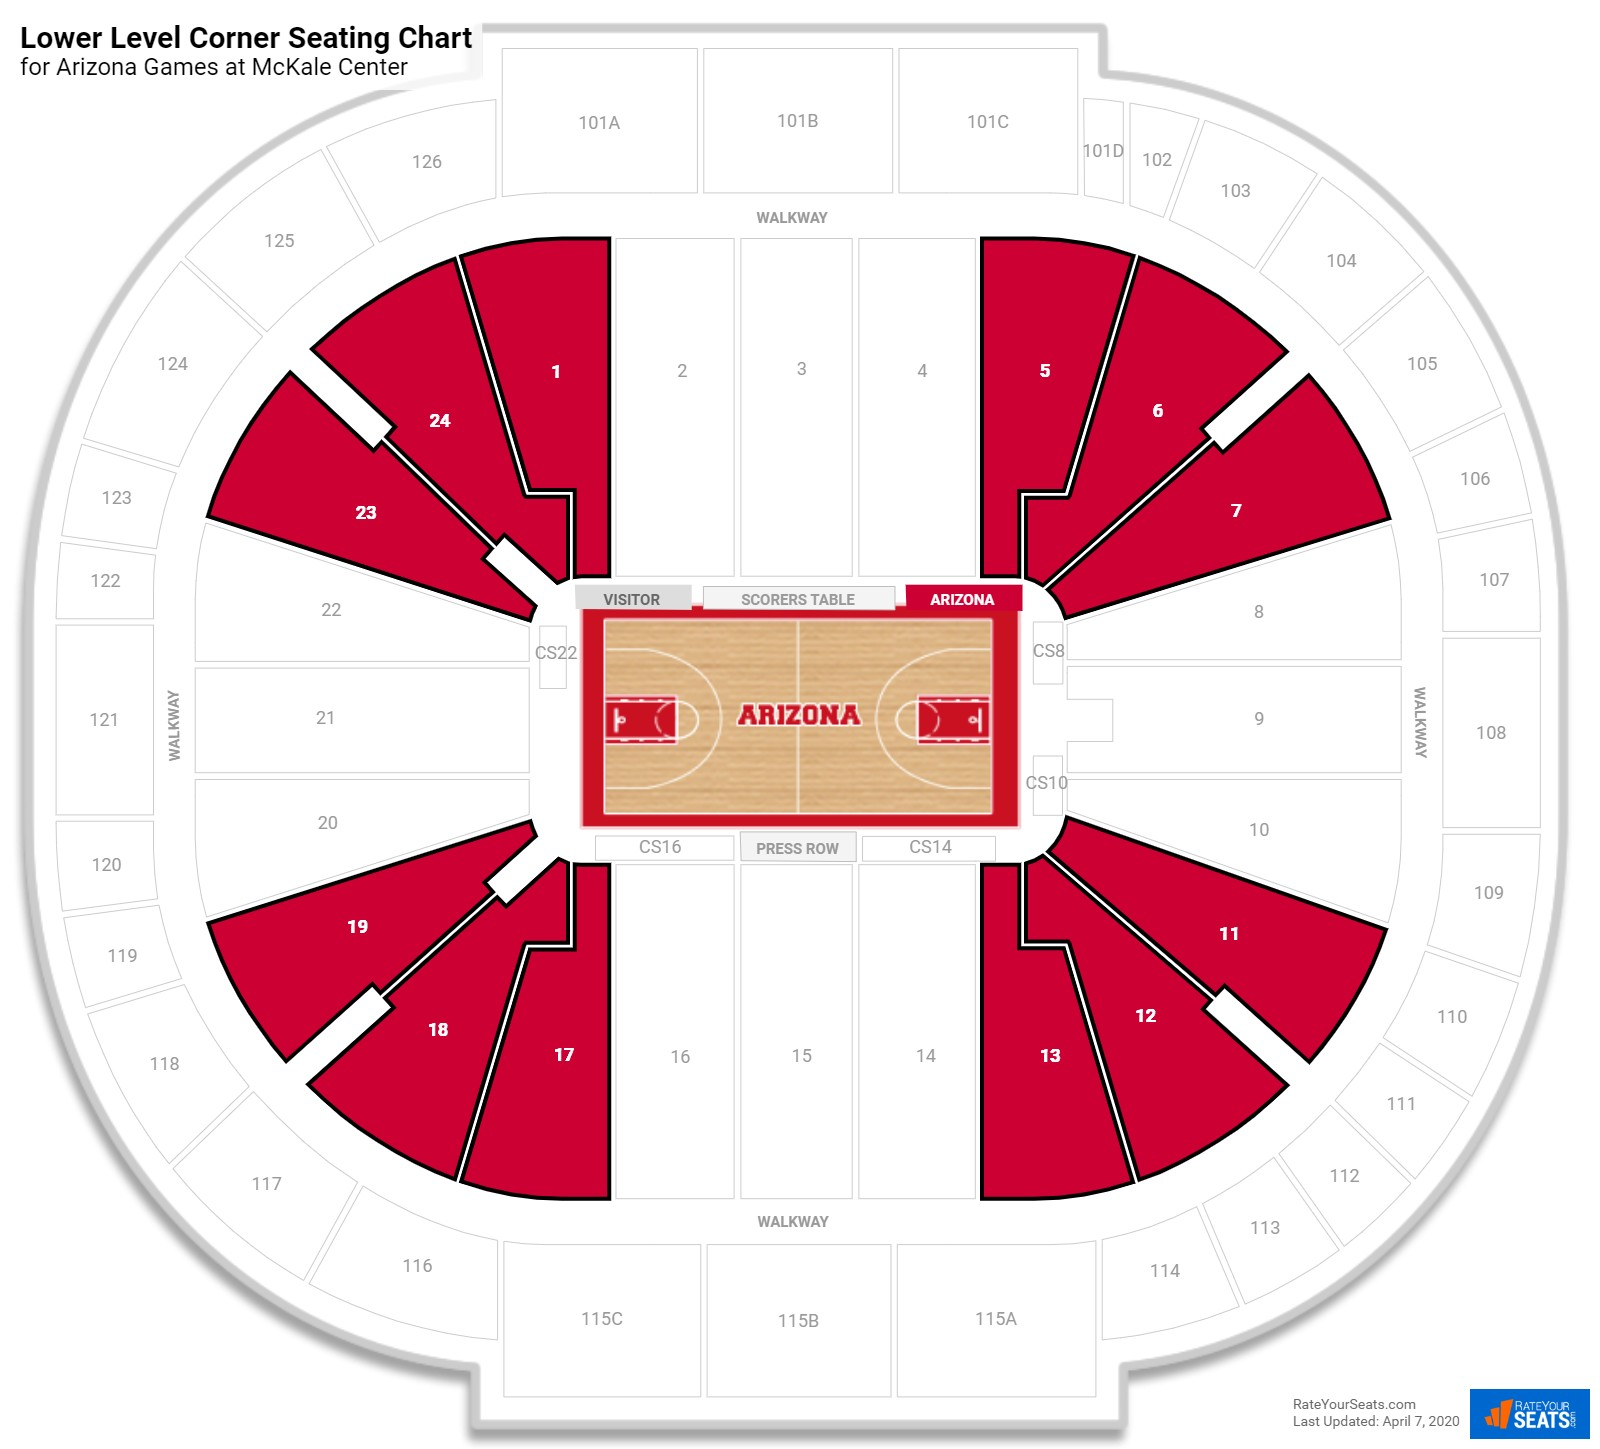 McKale Center Lower Level Corner seating chart